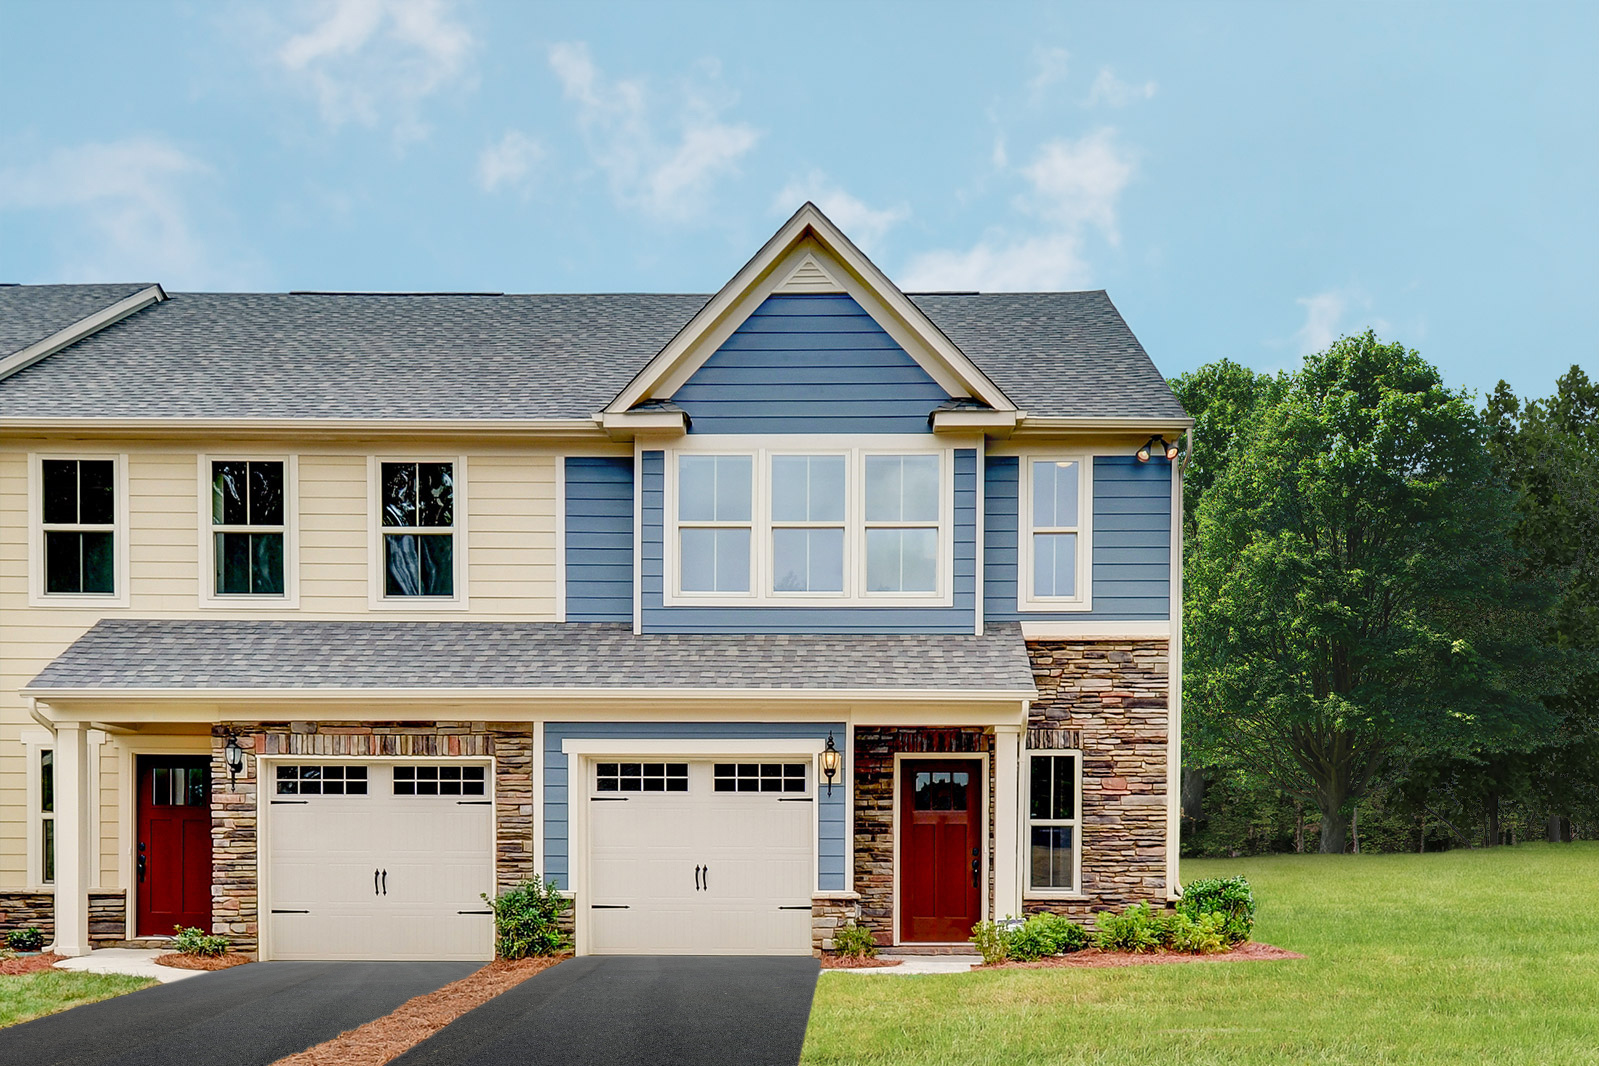 New Homes For Sale At Downingtown Walk In Downingtown Pa Within The